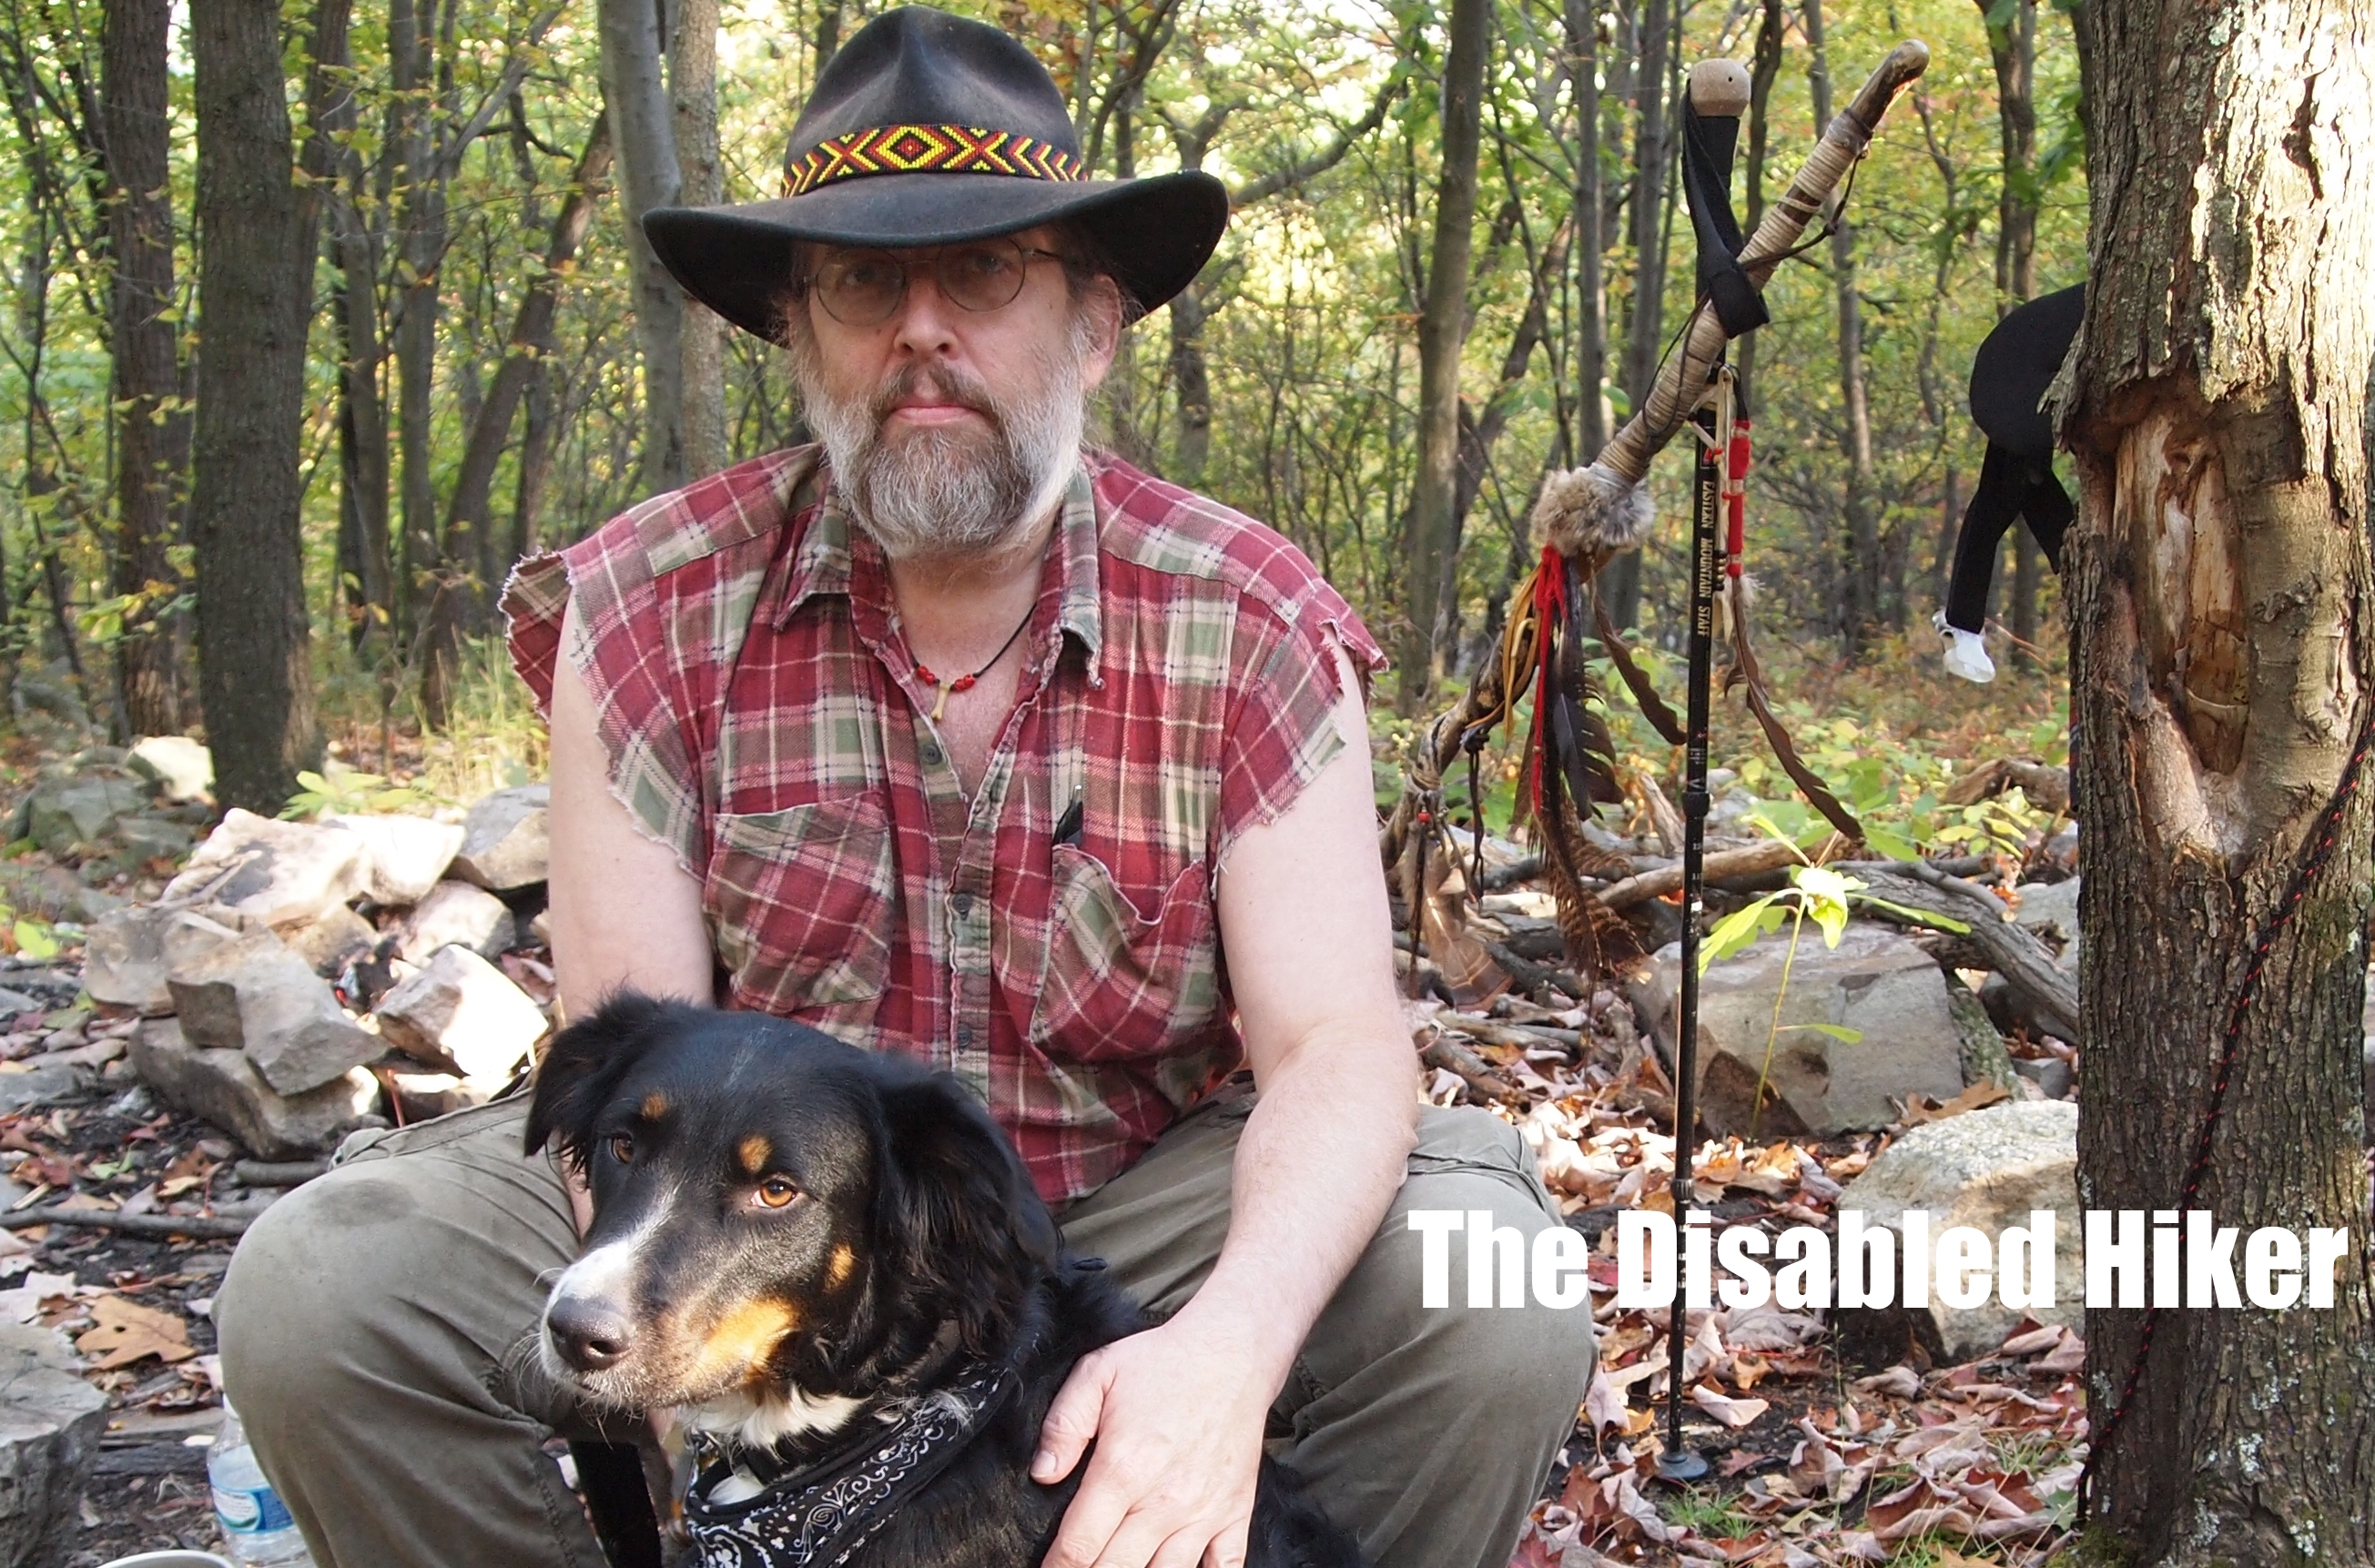 {Behind The Music} Terry Craig The Disabled Hiker – Being Free of All Restrictions